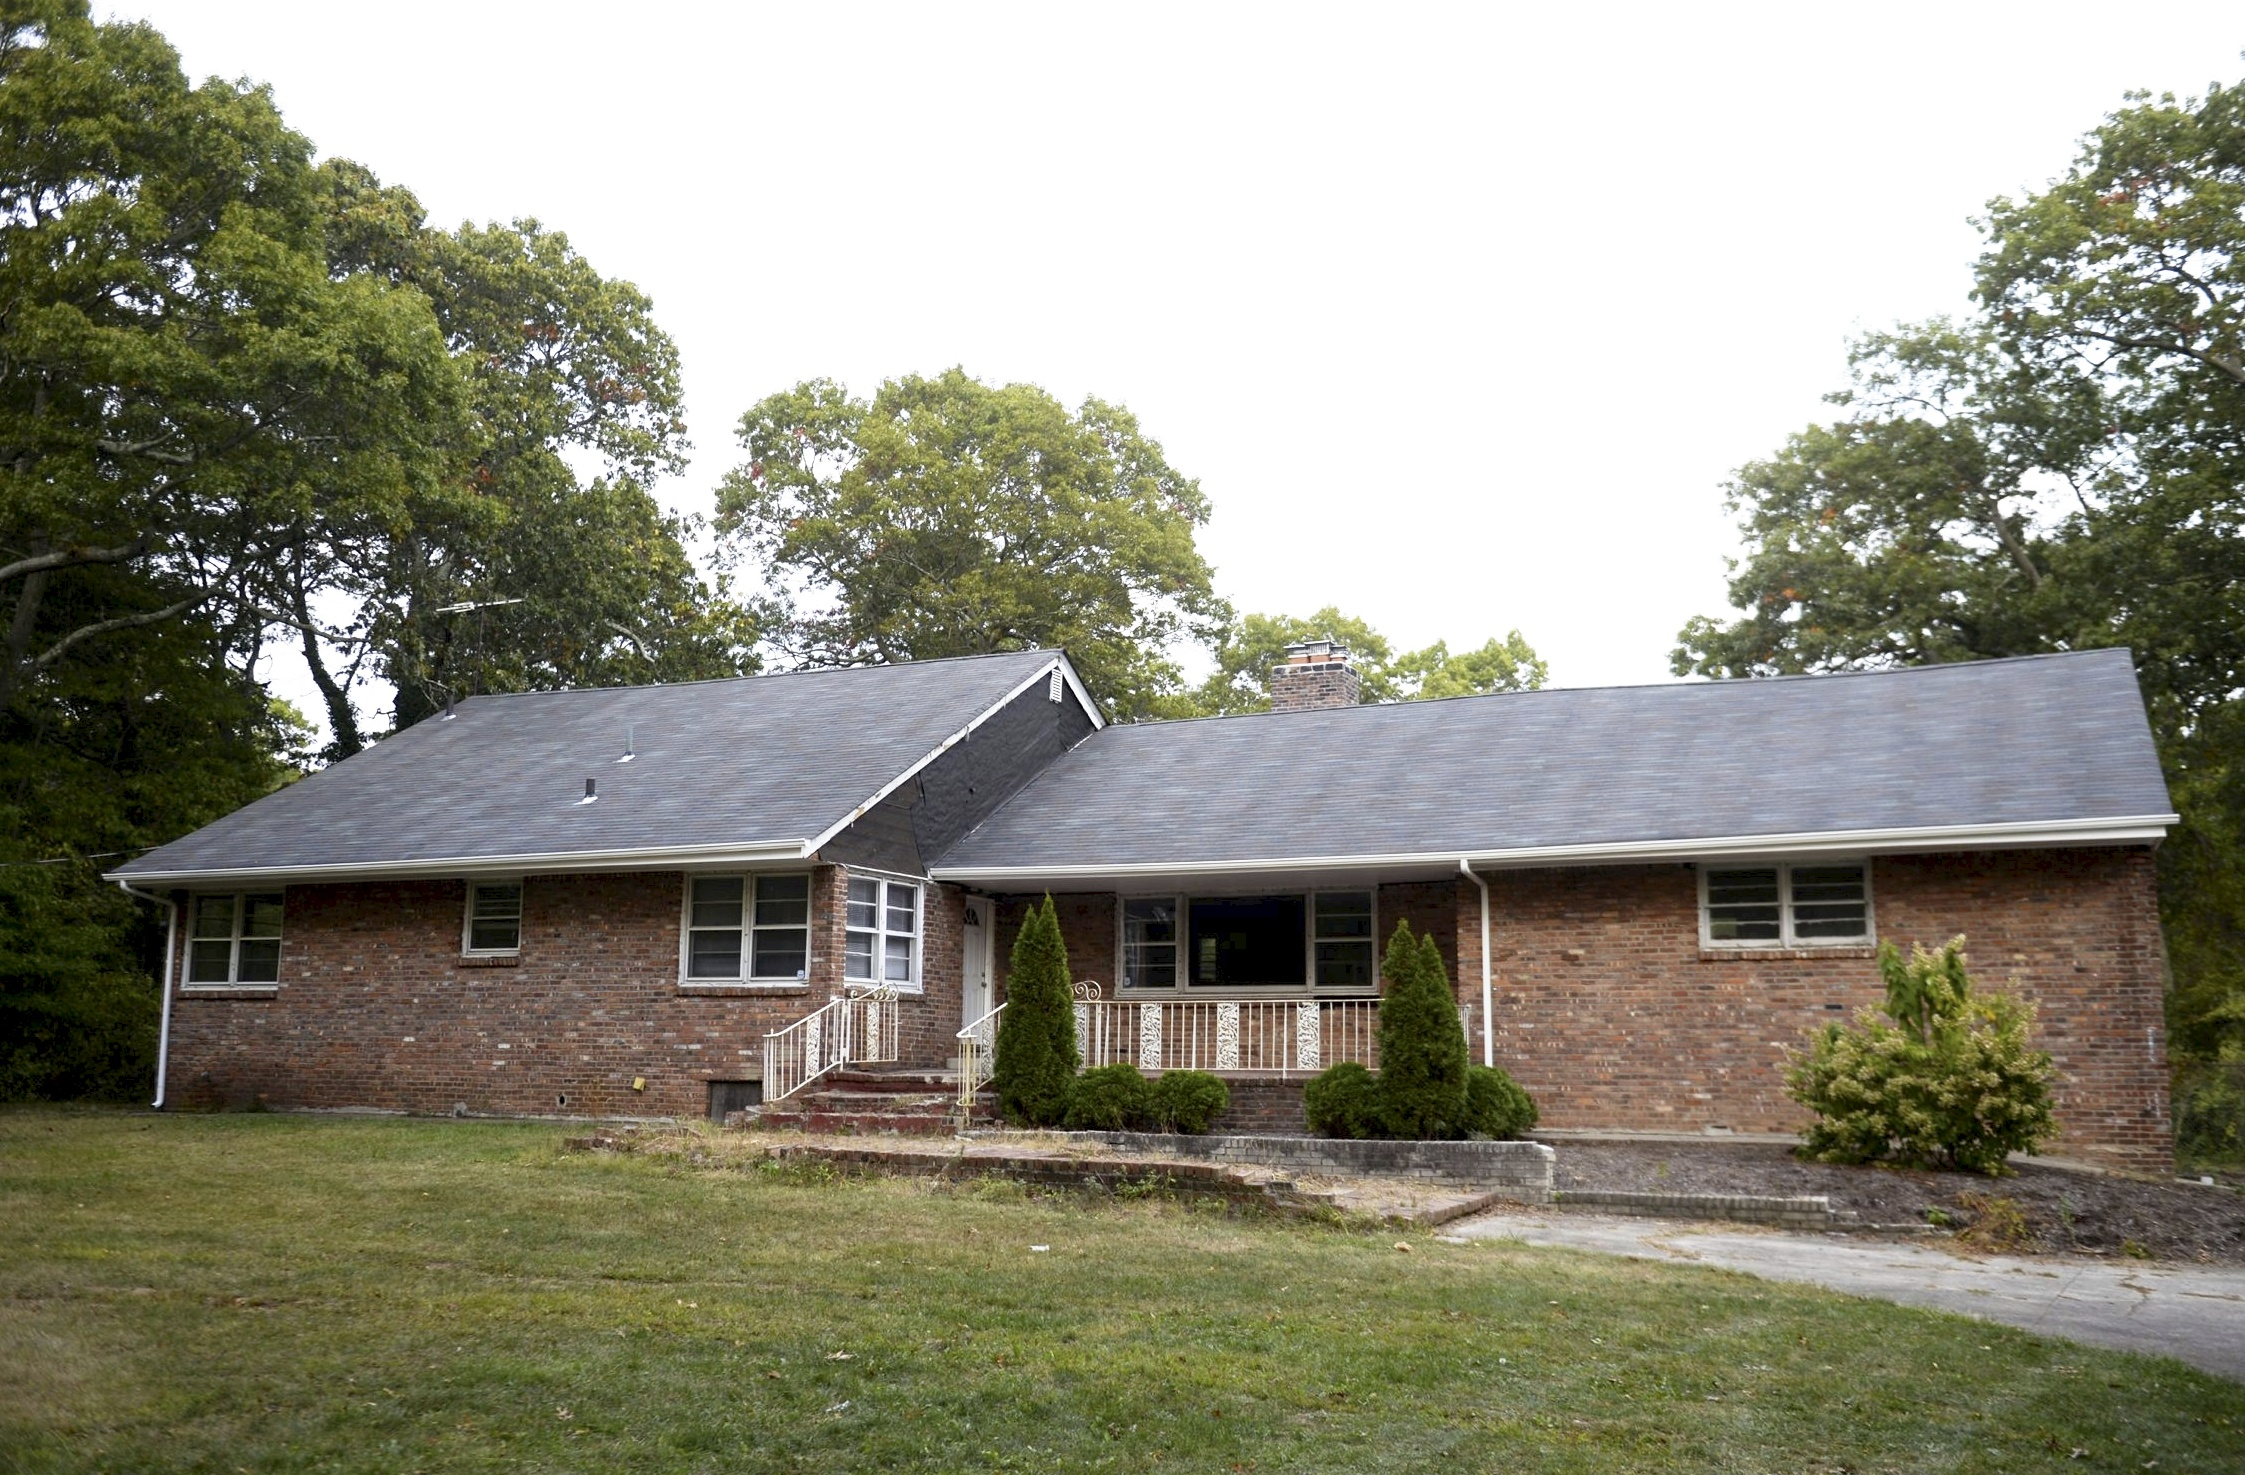 John and Alice Coltrane's home in Dix Hills on Long Island, New York